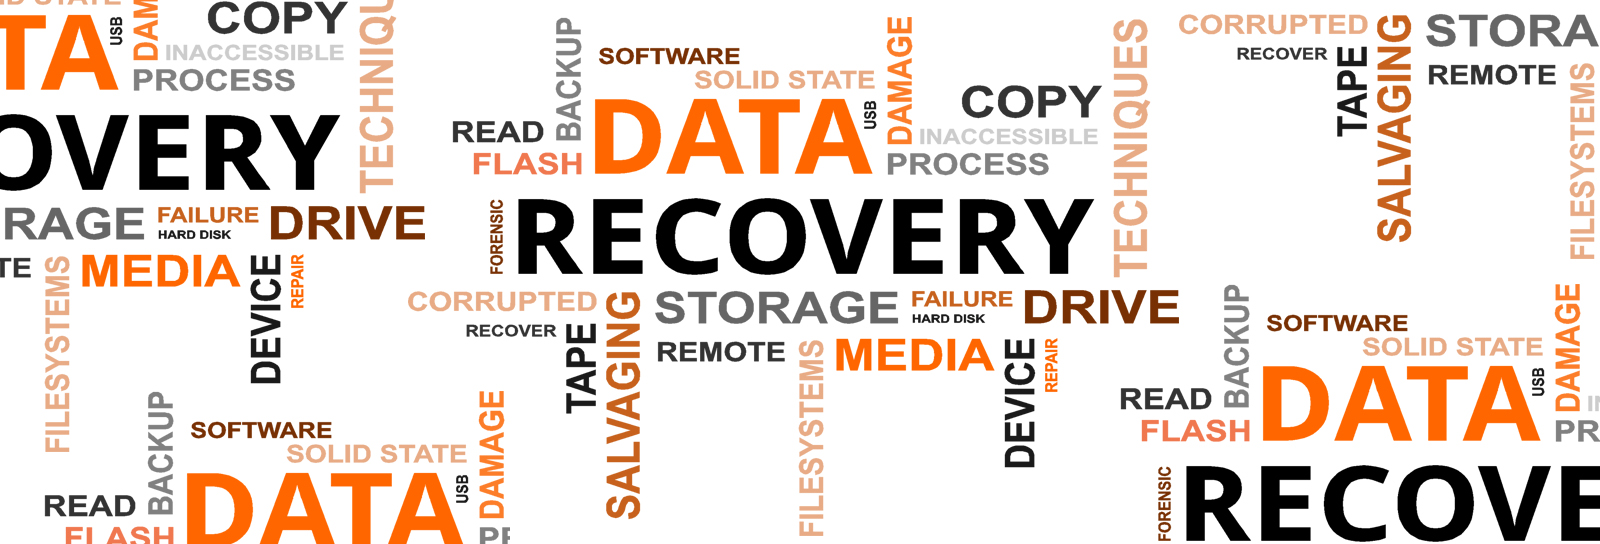 Data Backup and Restore Services